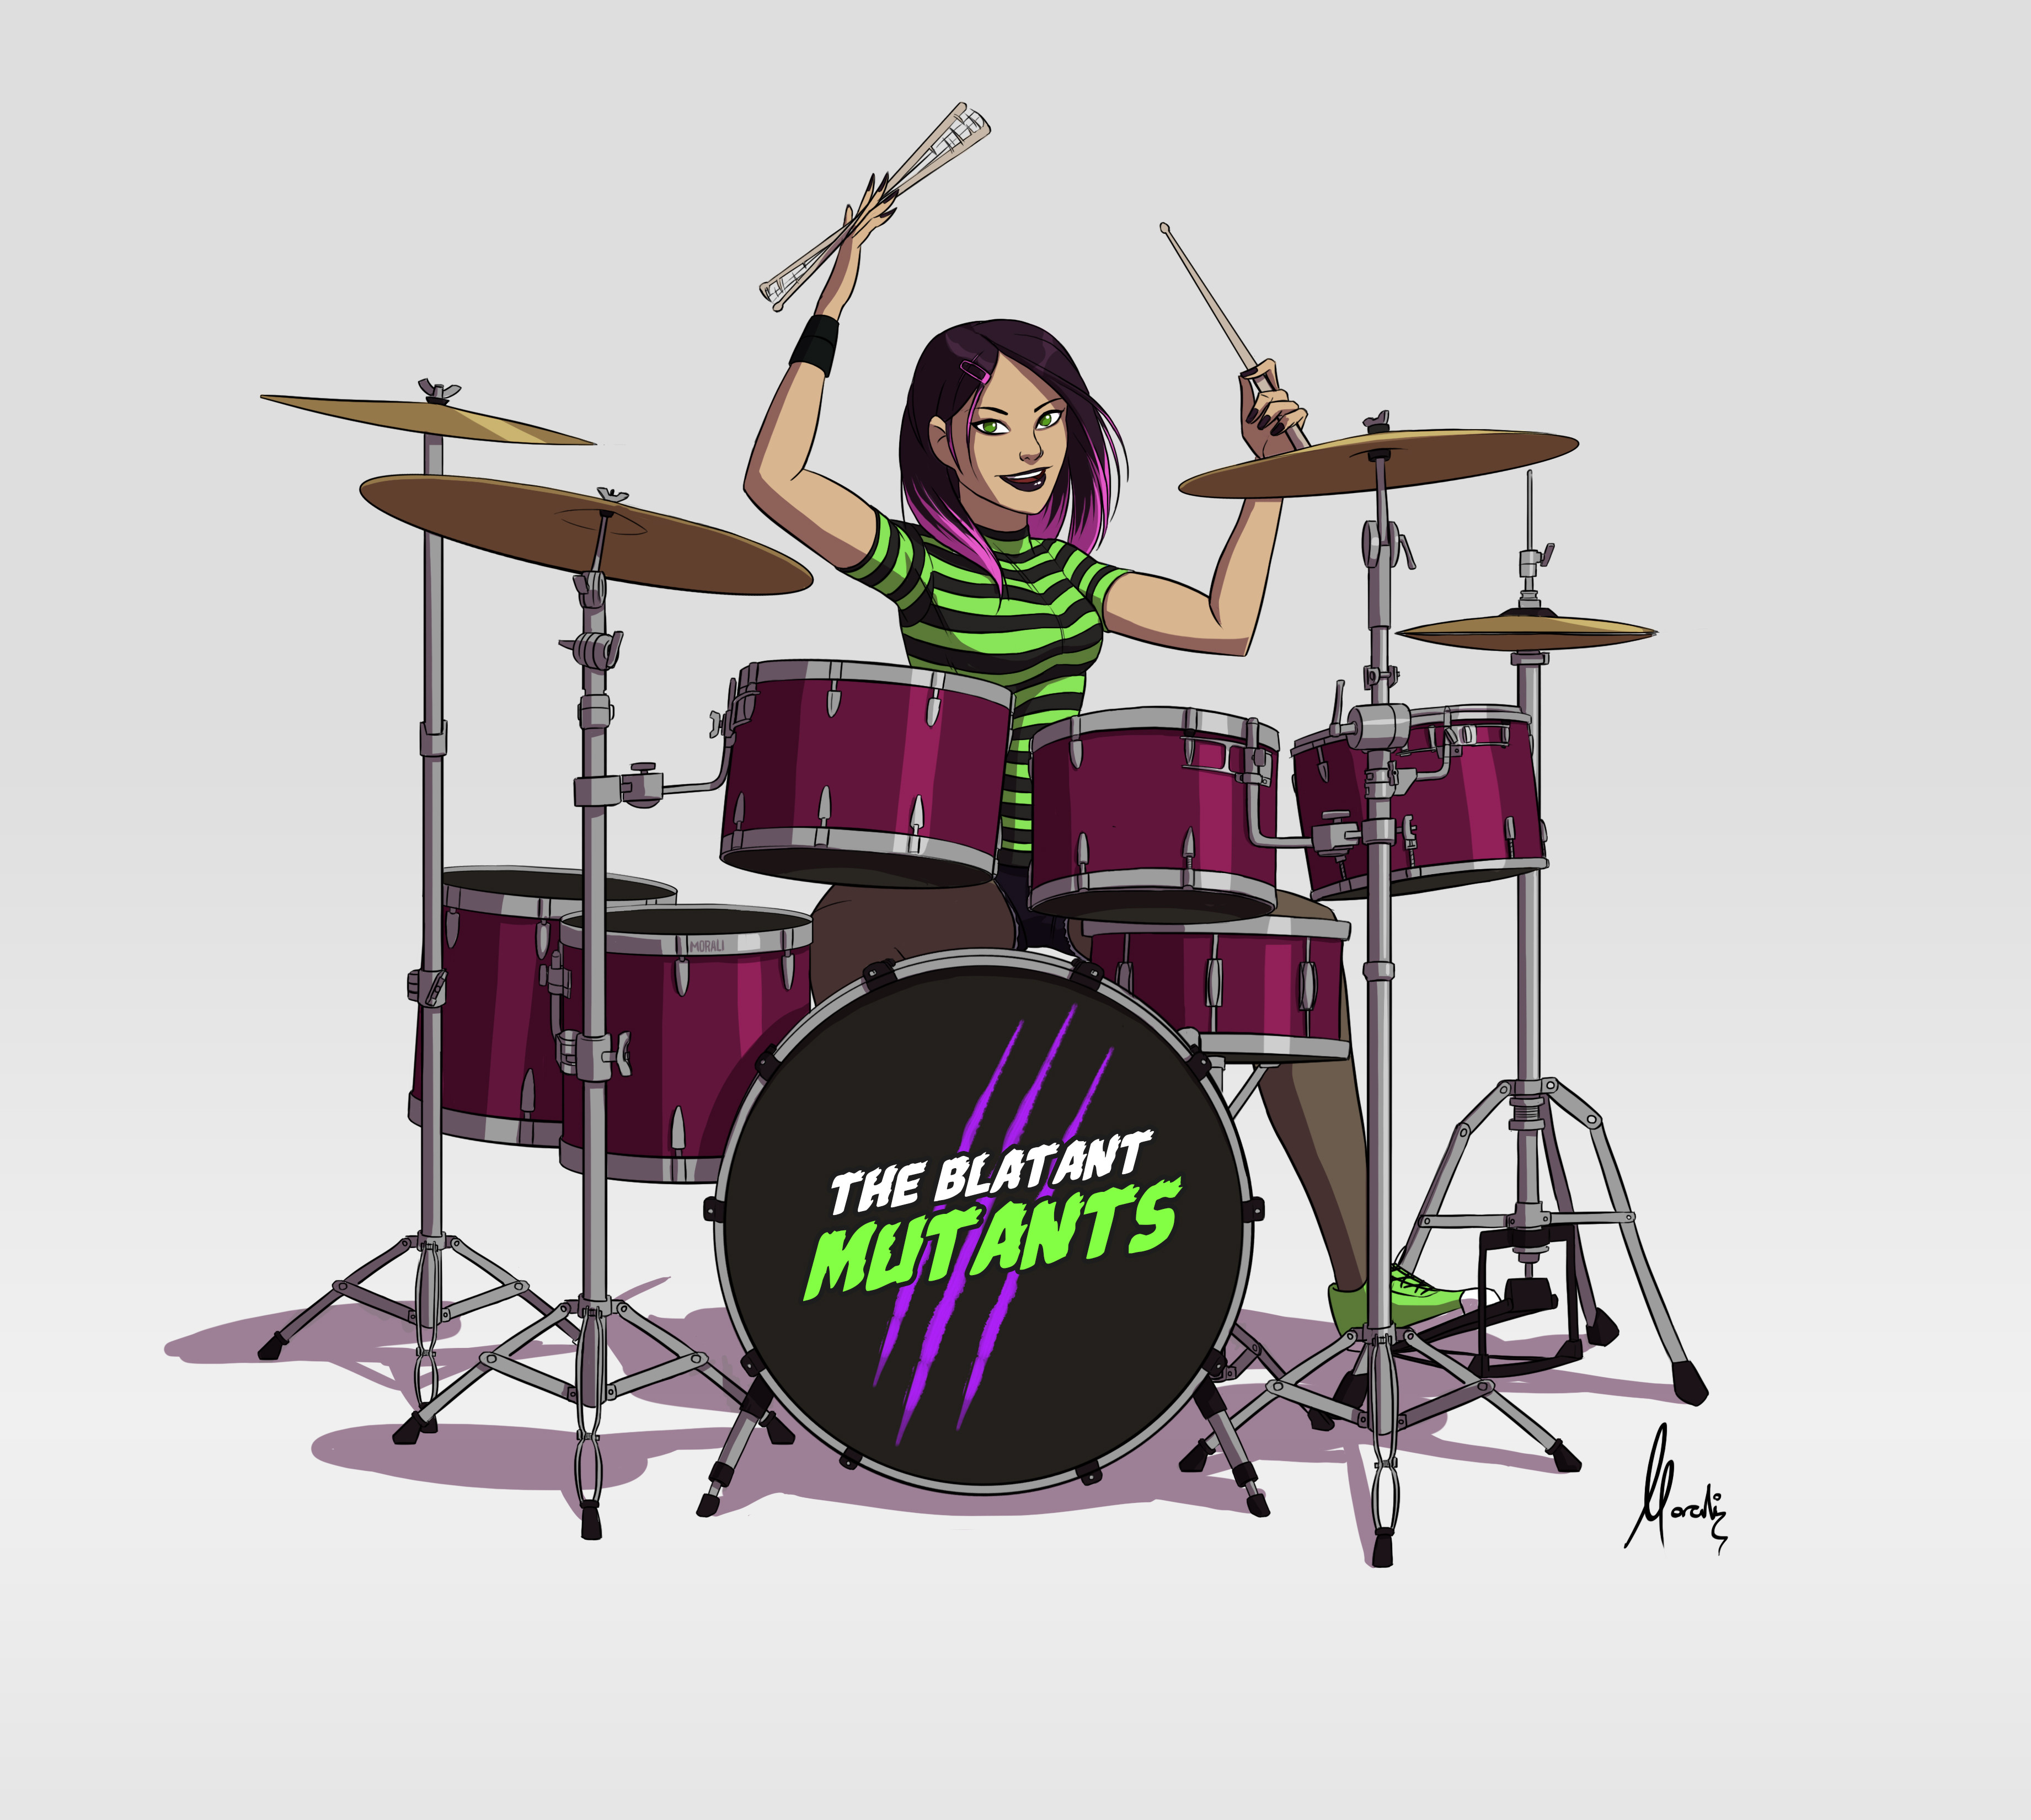 The drummer.